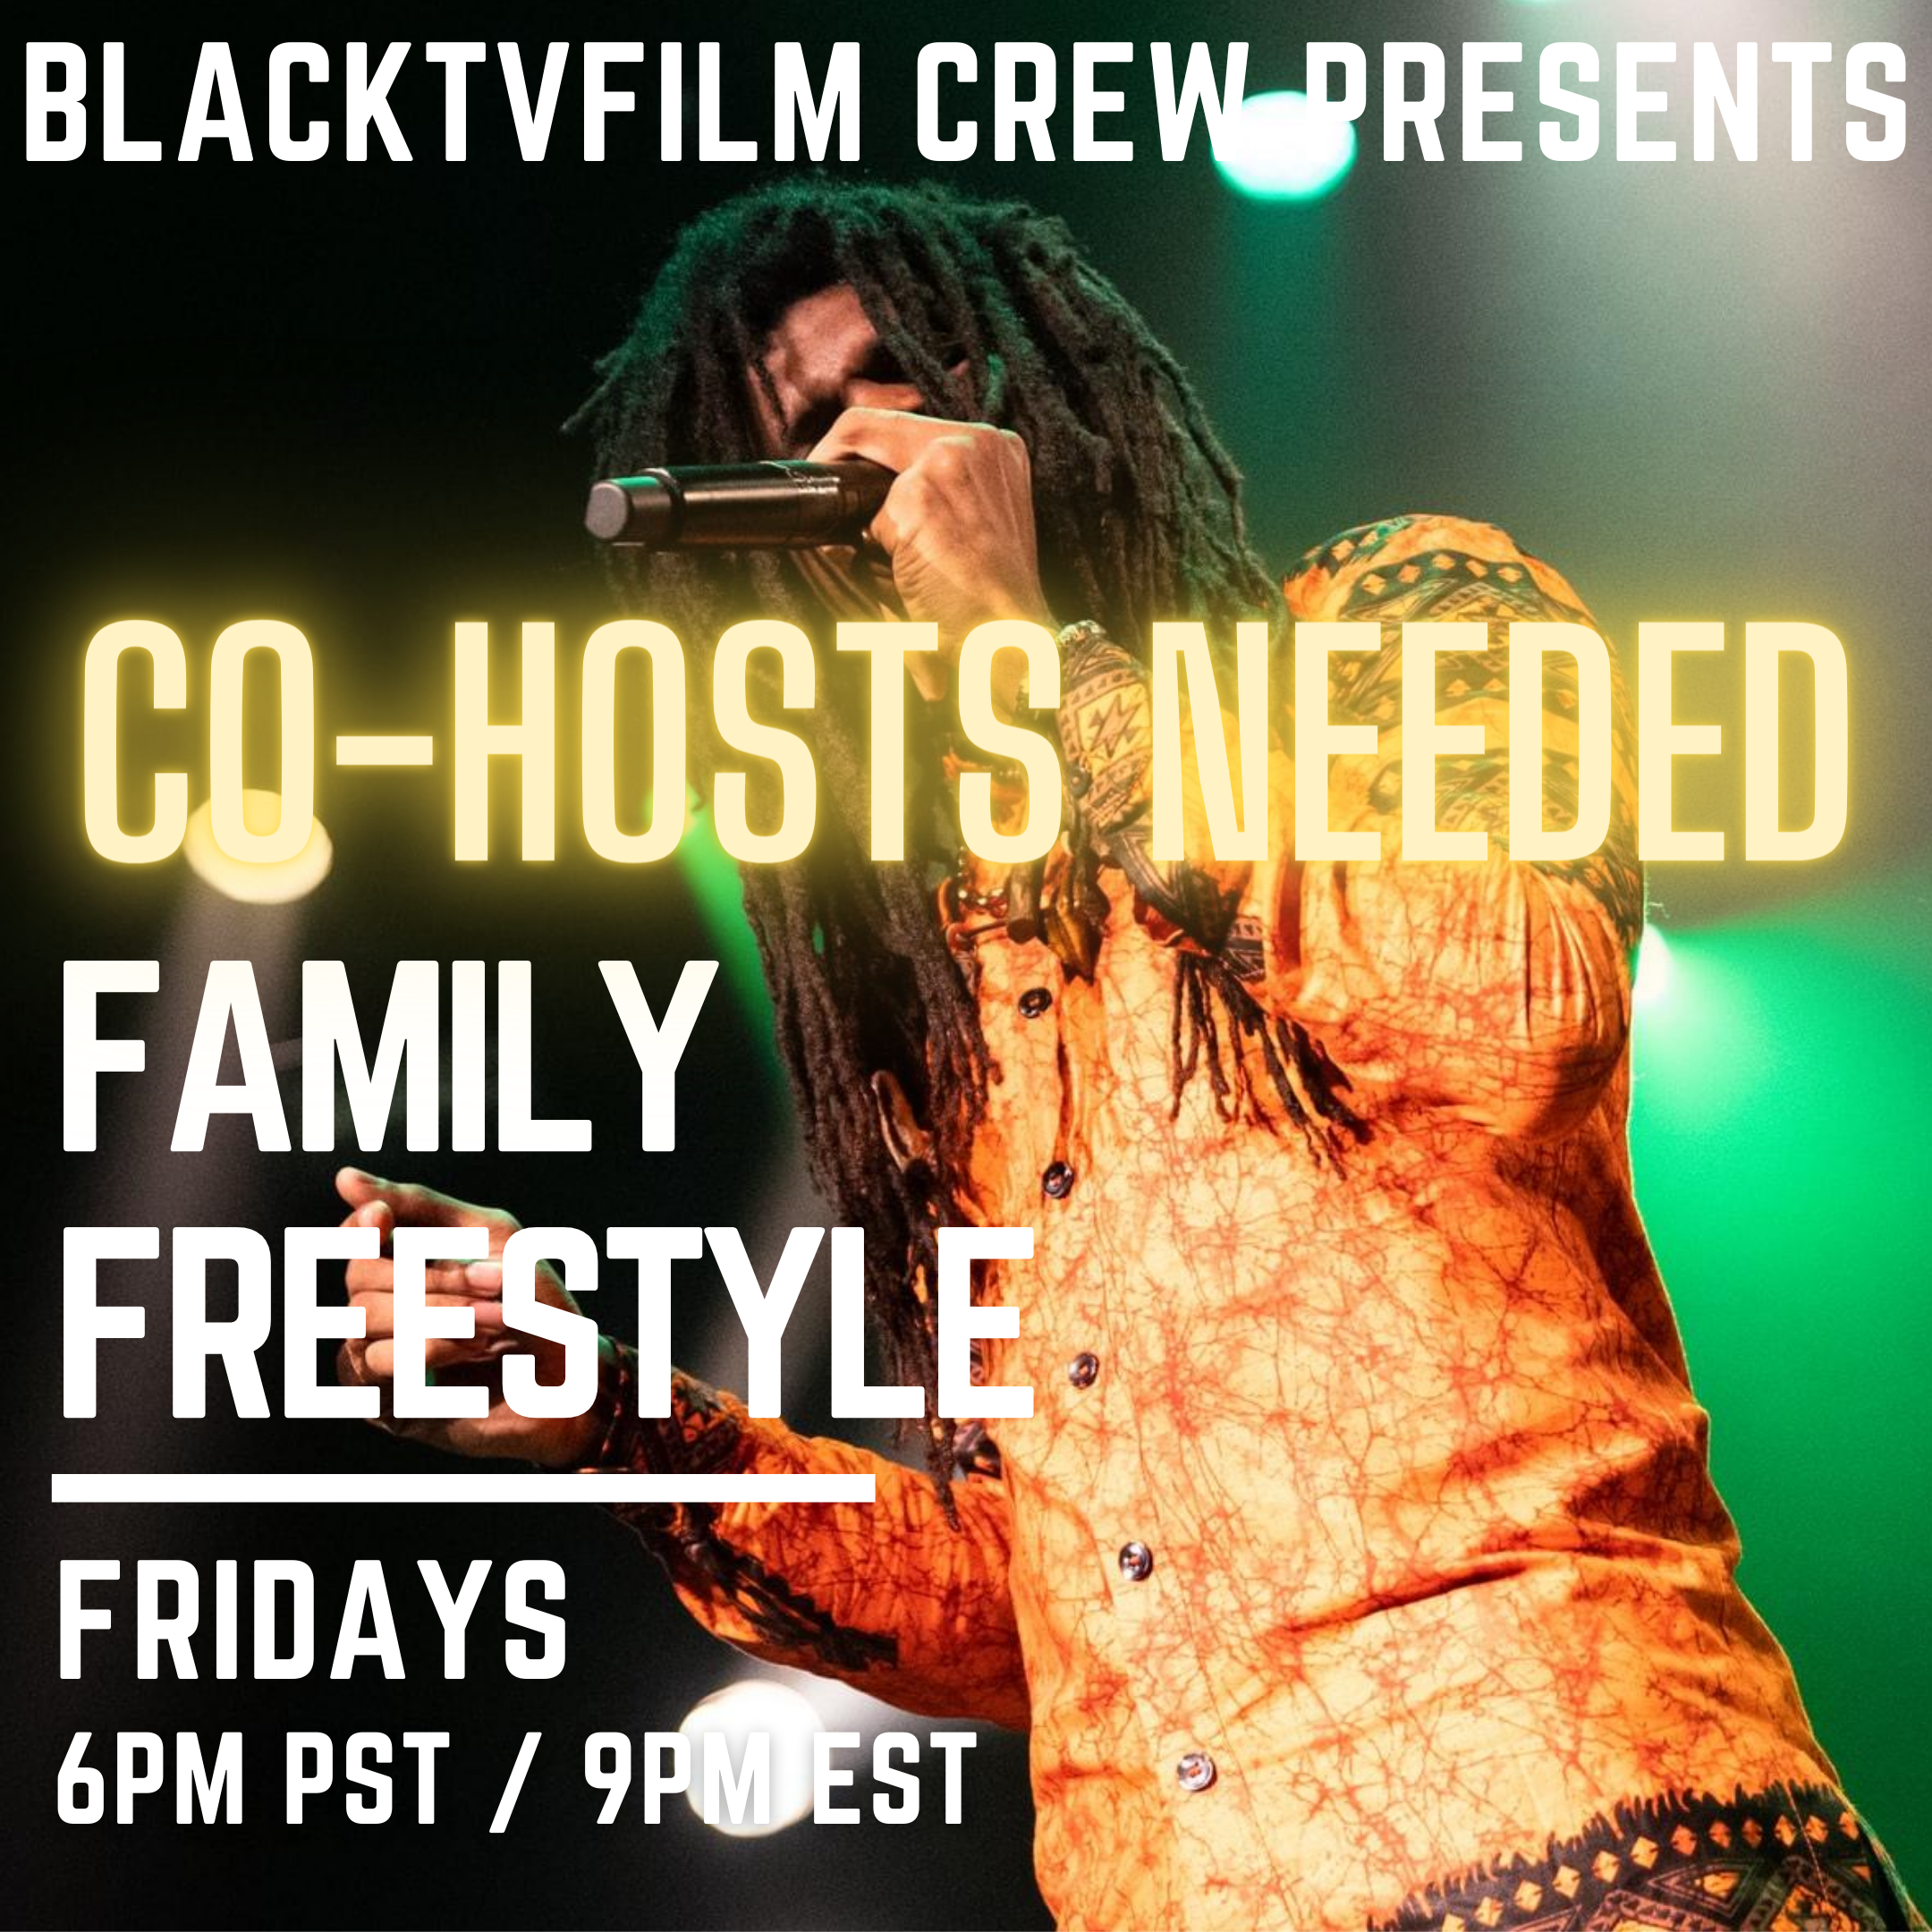 Family Freestyle Friday